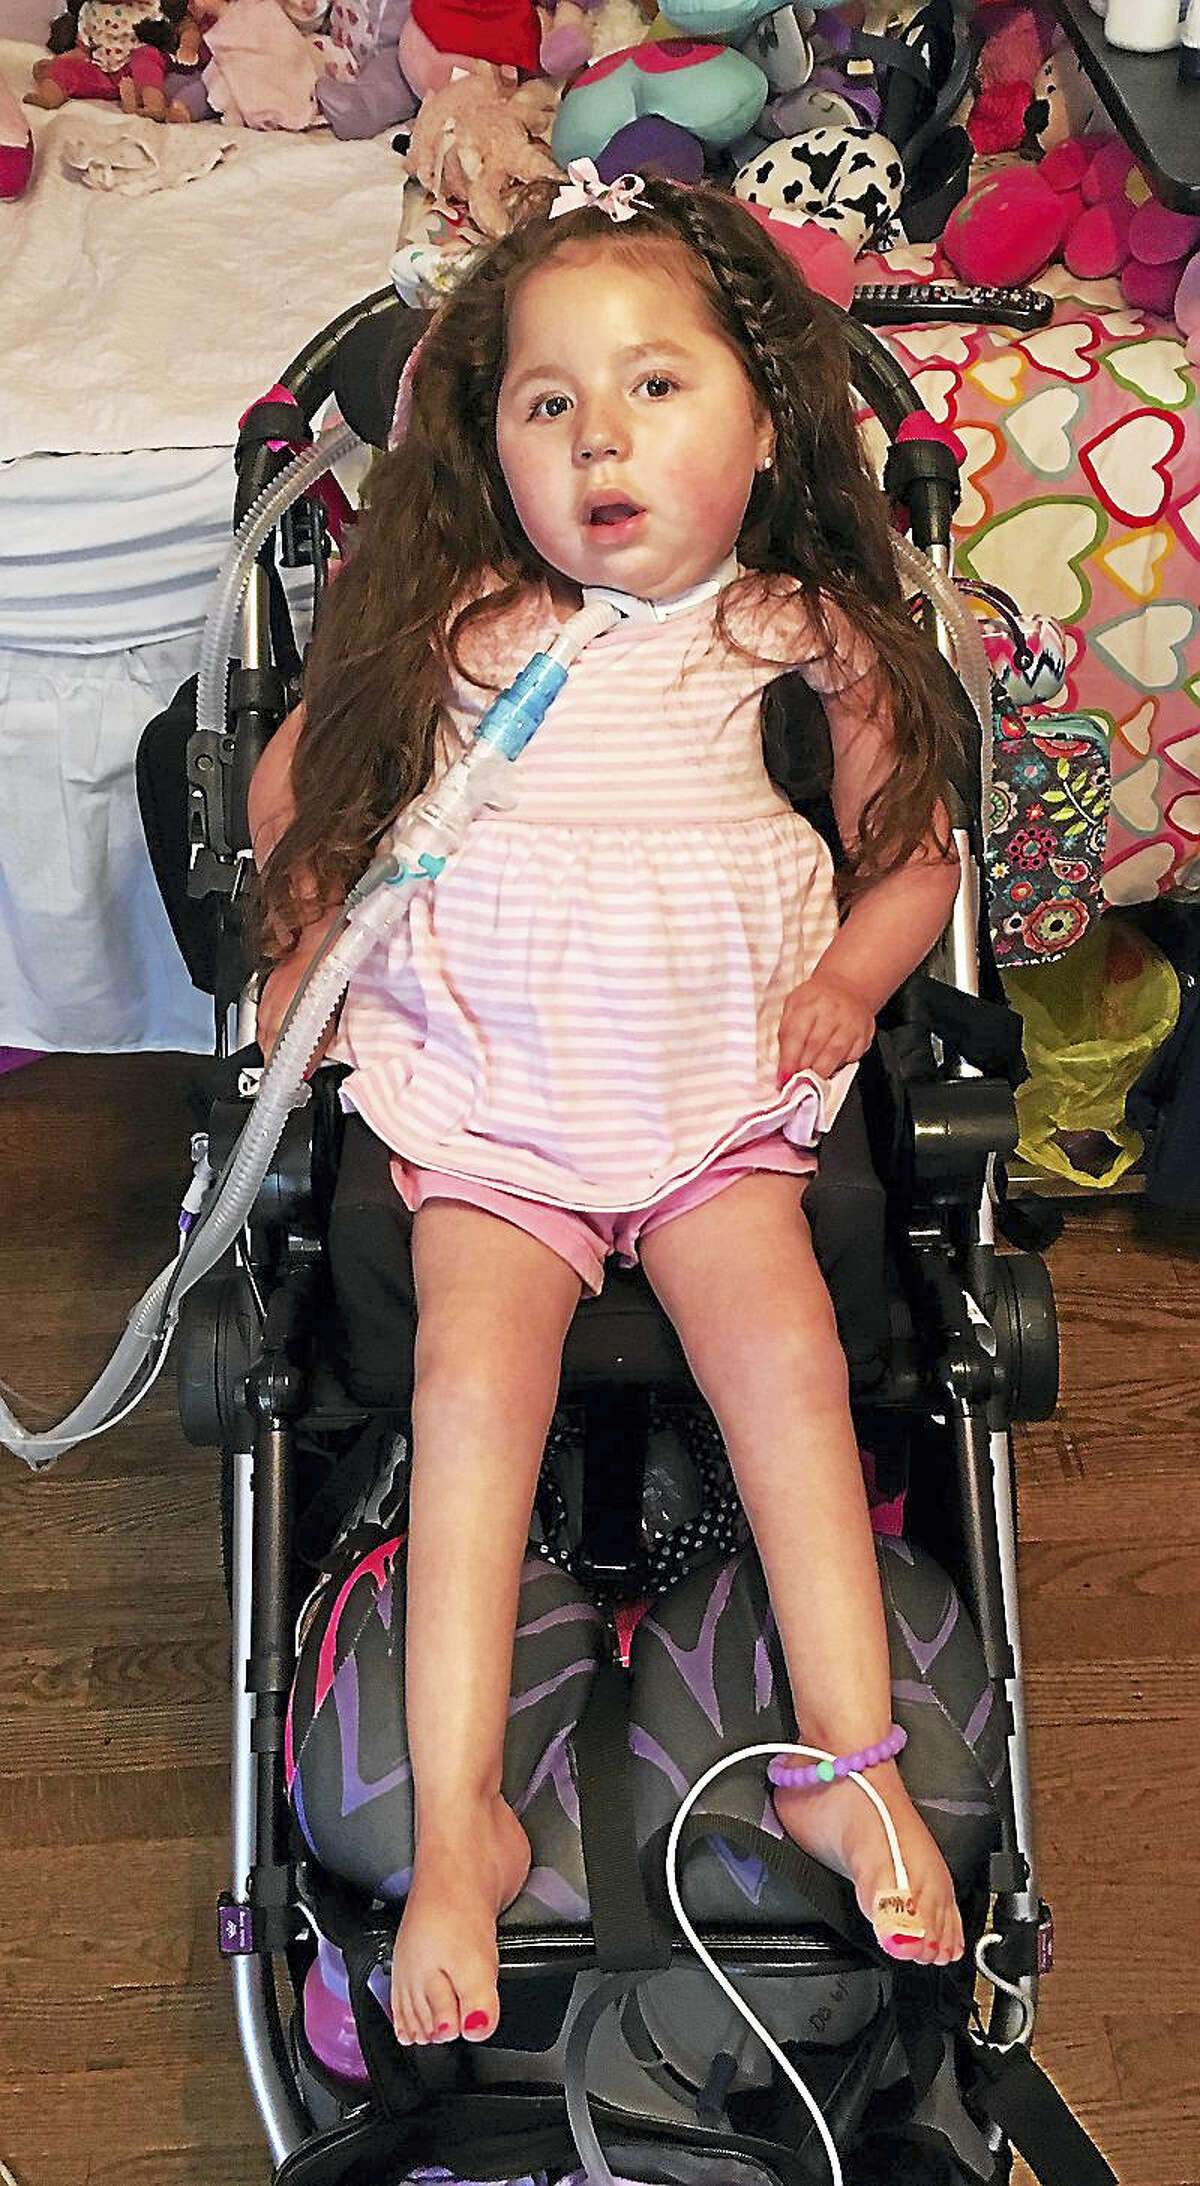 (Contributed Photo) Eva Grace Kelly, 5, of West Haven, has a rare condition that causes her muscles to stop working and is beginning to block her ability to smile.